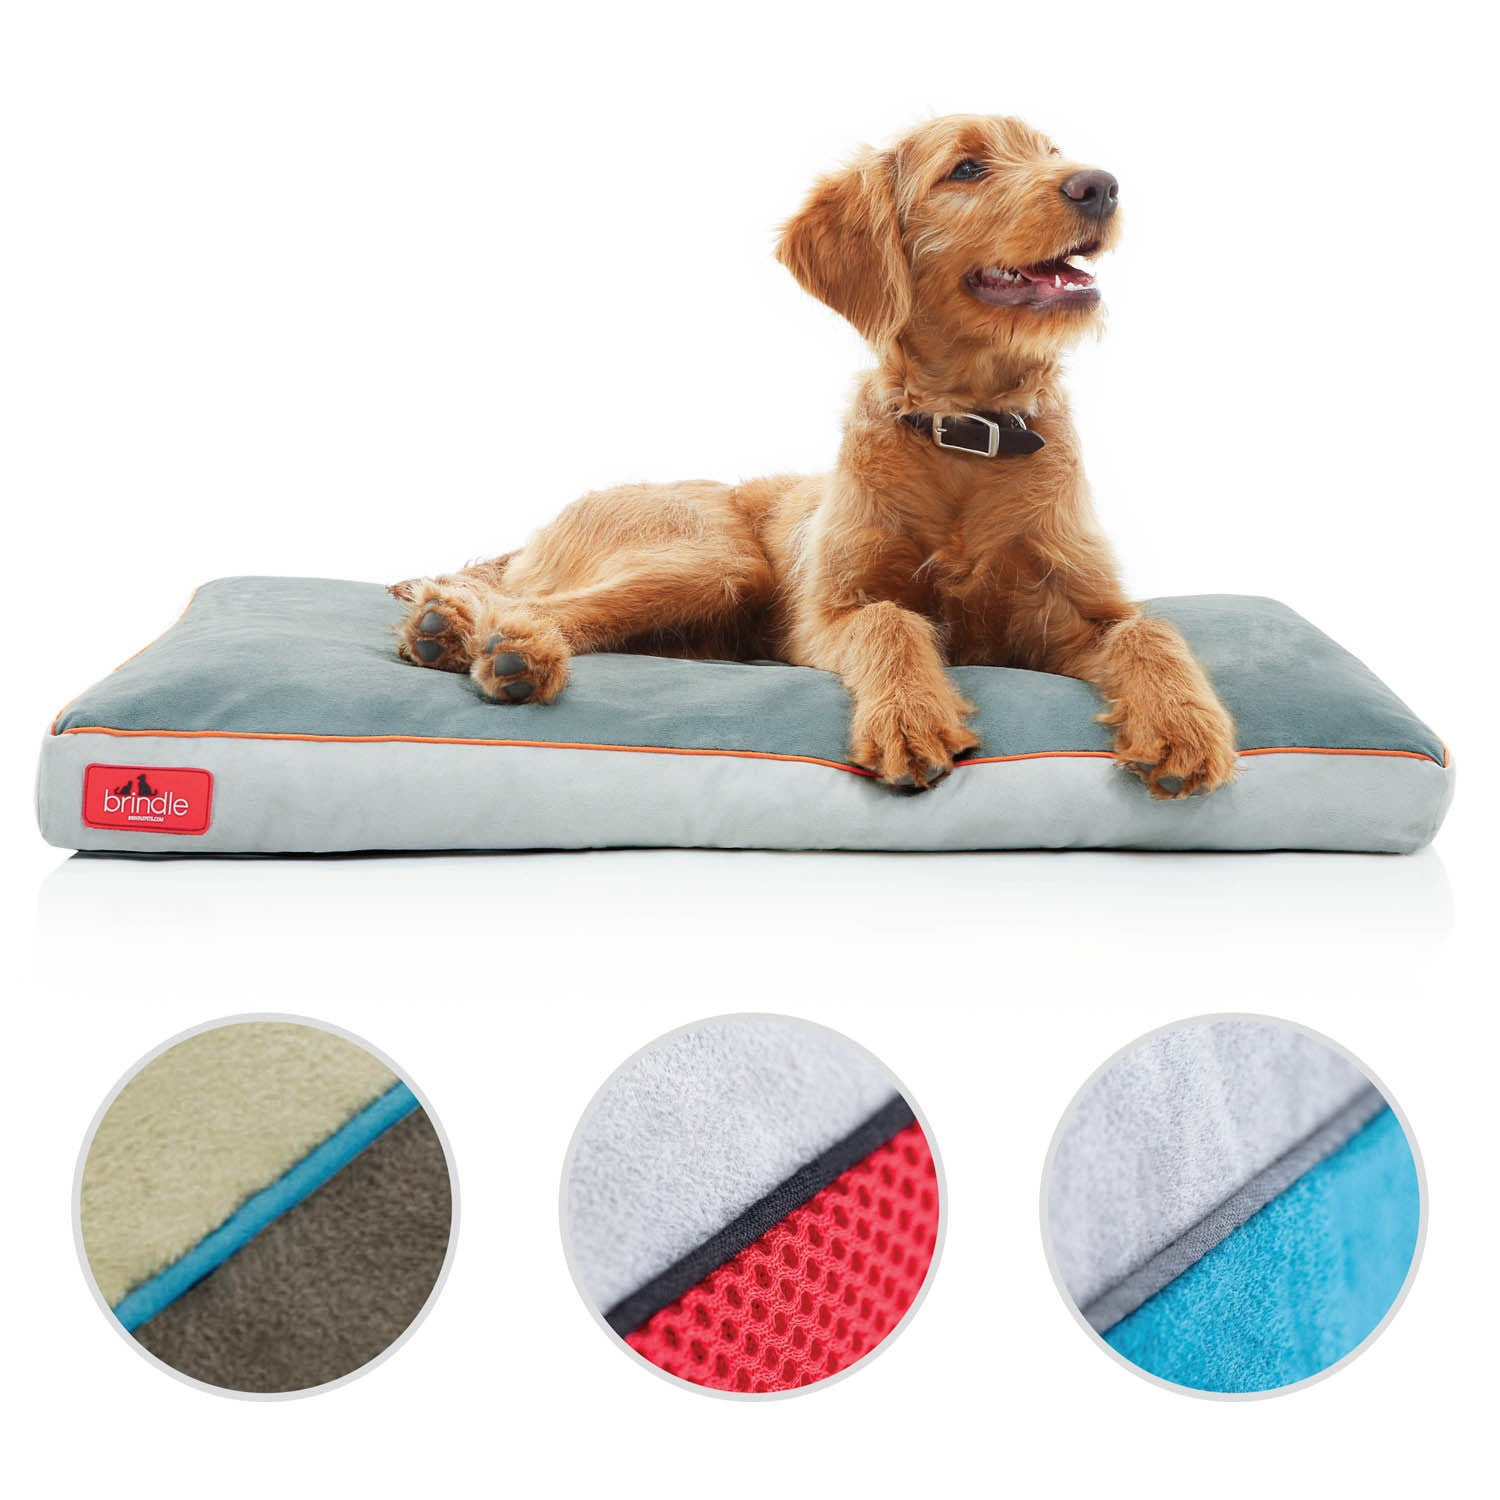 LARGE DOG BED WITH REMOVABLE ZIPPED COVER WASHABLE PET CUSHION CHECKED